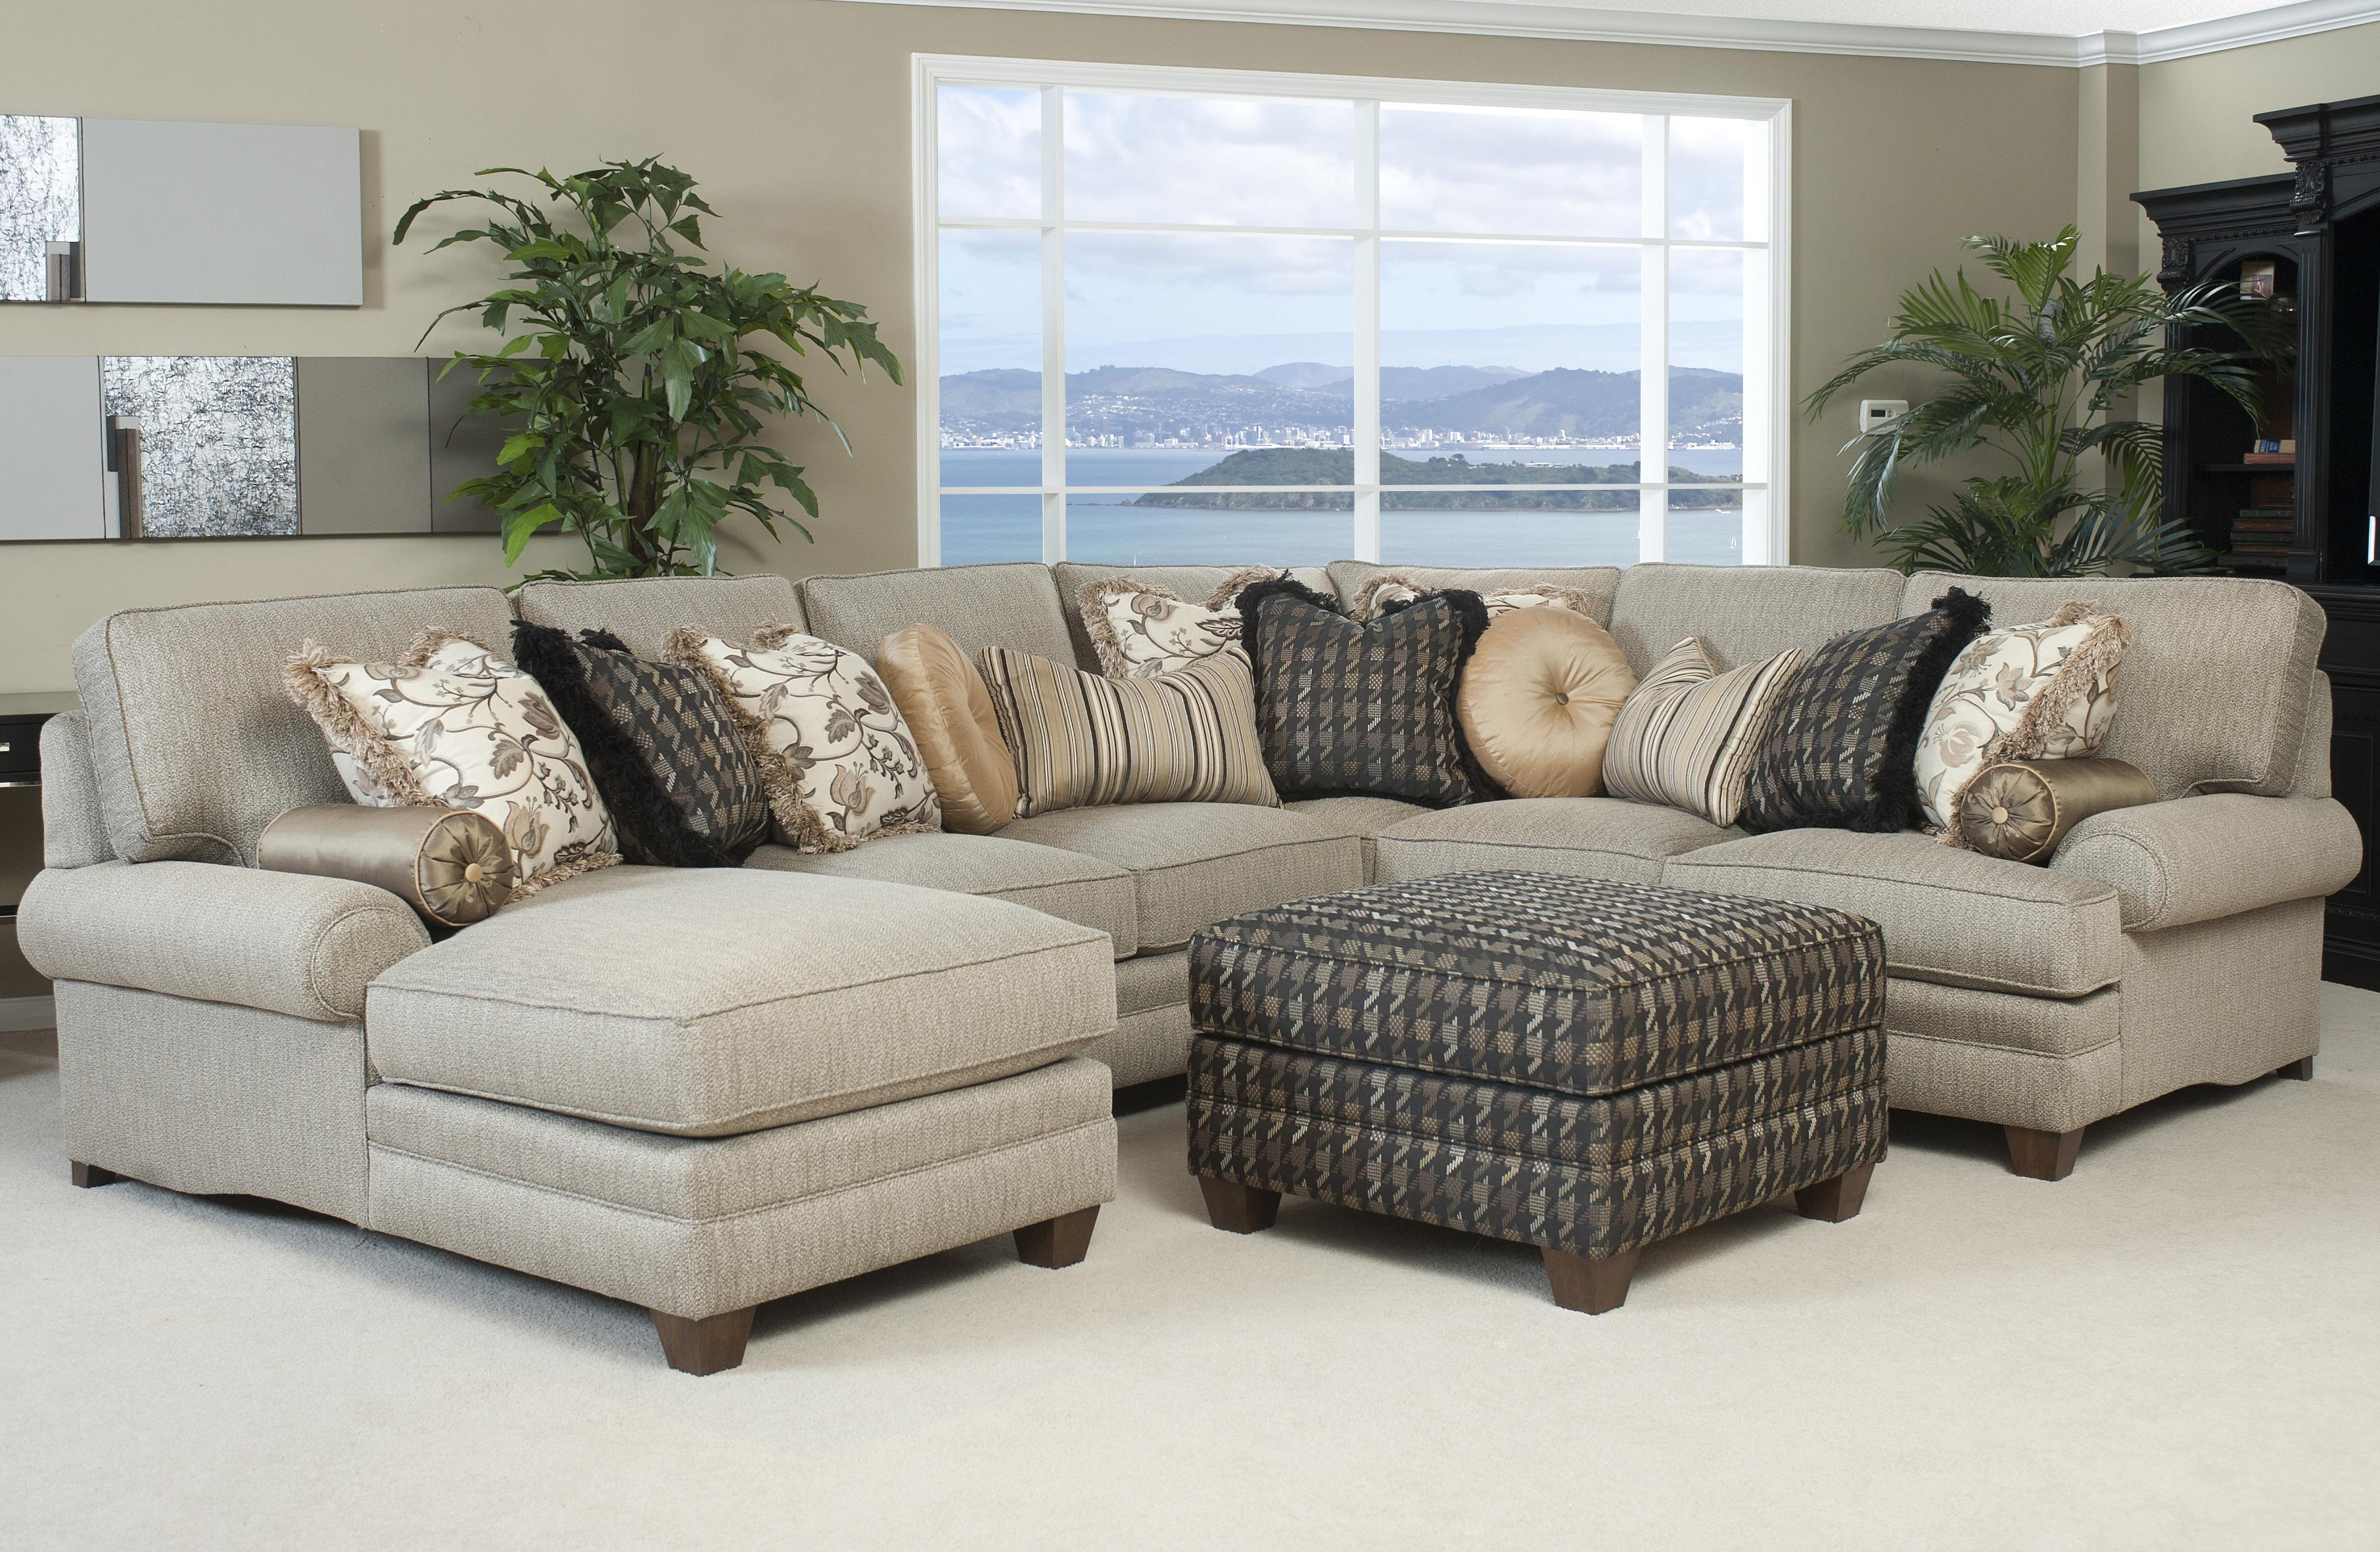 Traditional Styled Sectional Sofa with fortable Pillowed Seat